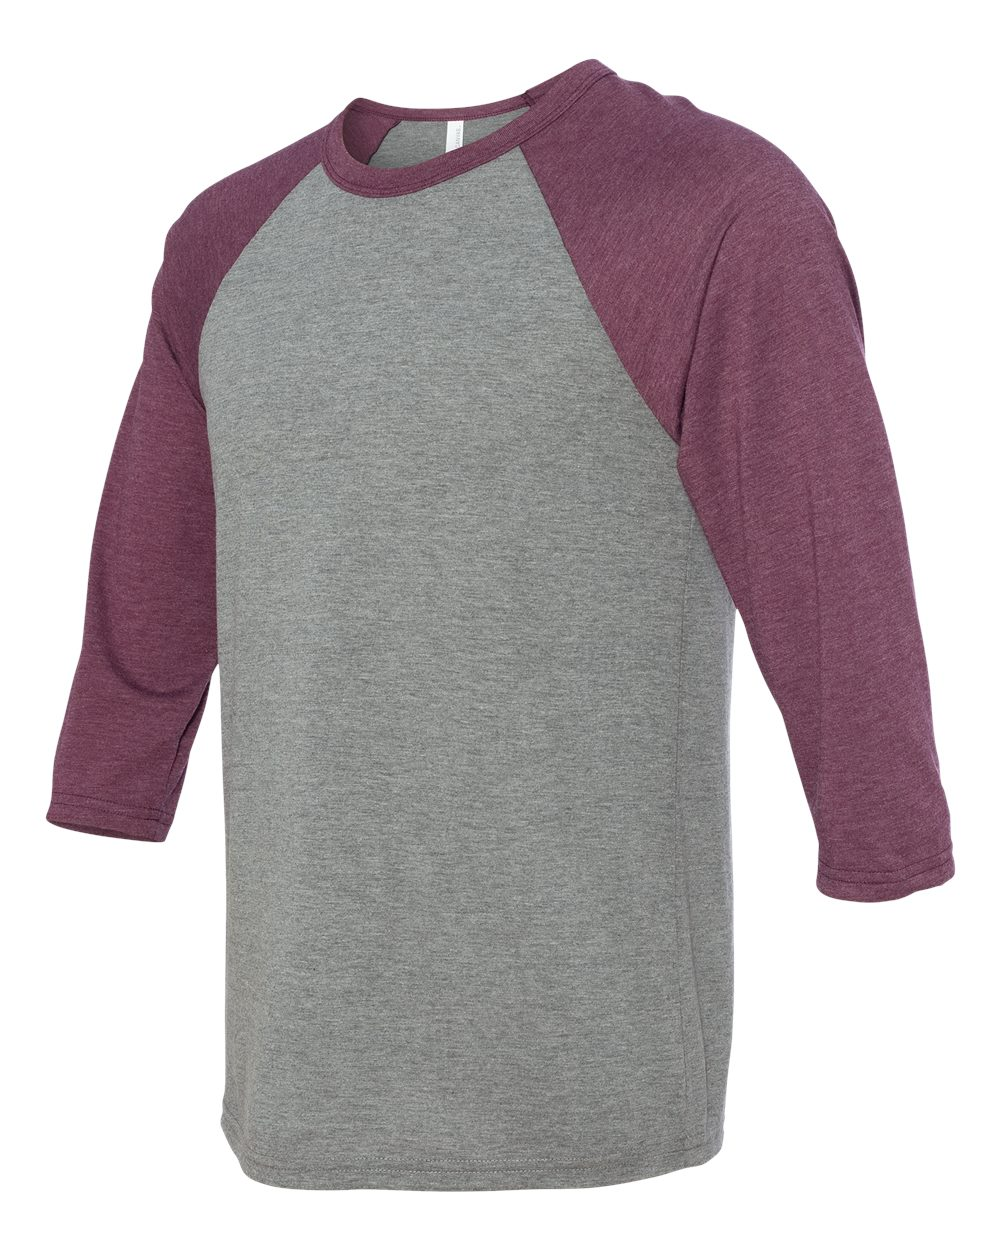 click to view Grey/Maroon Triblend